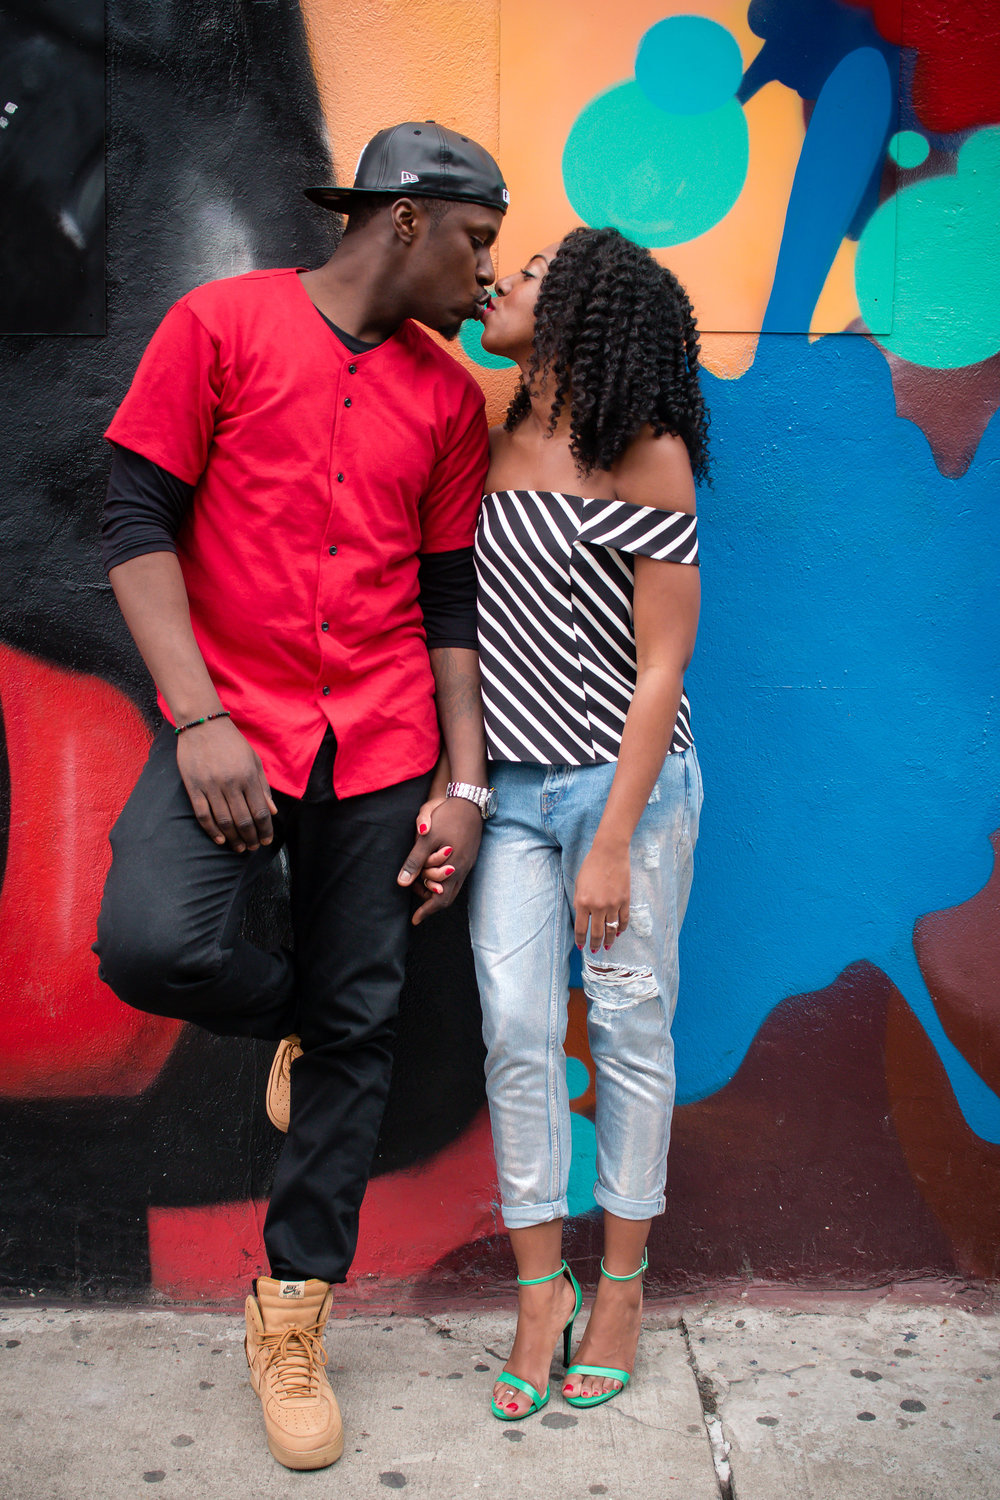 Kate-Alison-Photography-Lower-East-Side-NYC-Engagement-Session-Street-Art